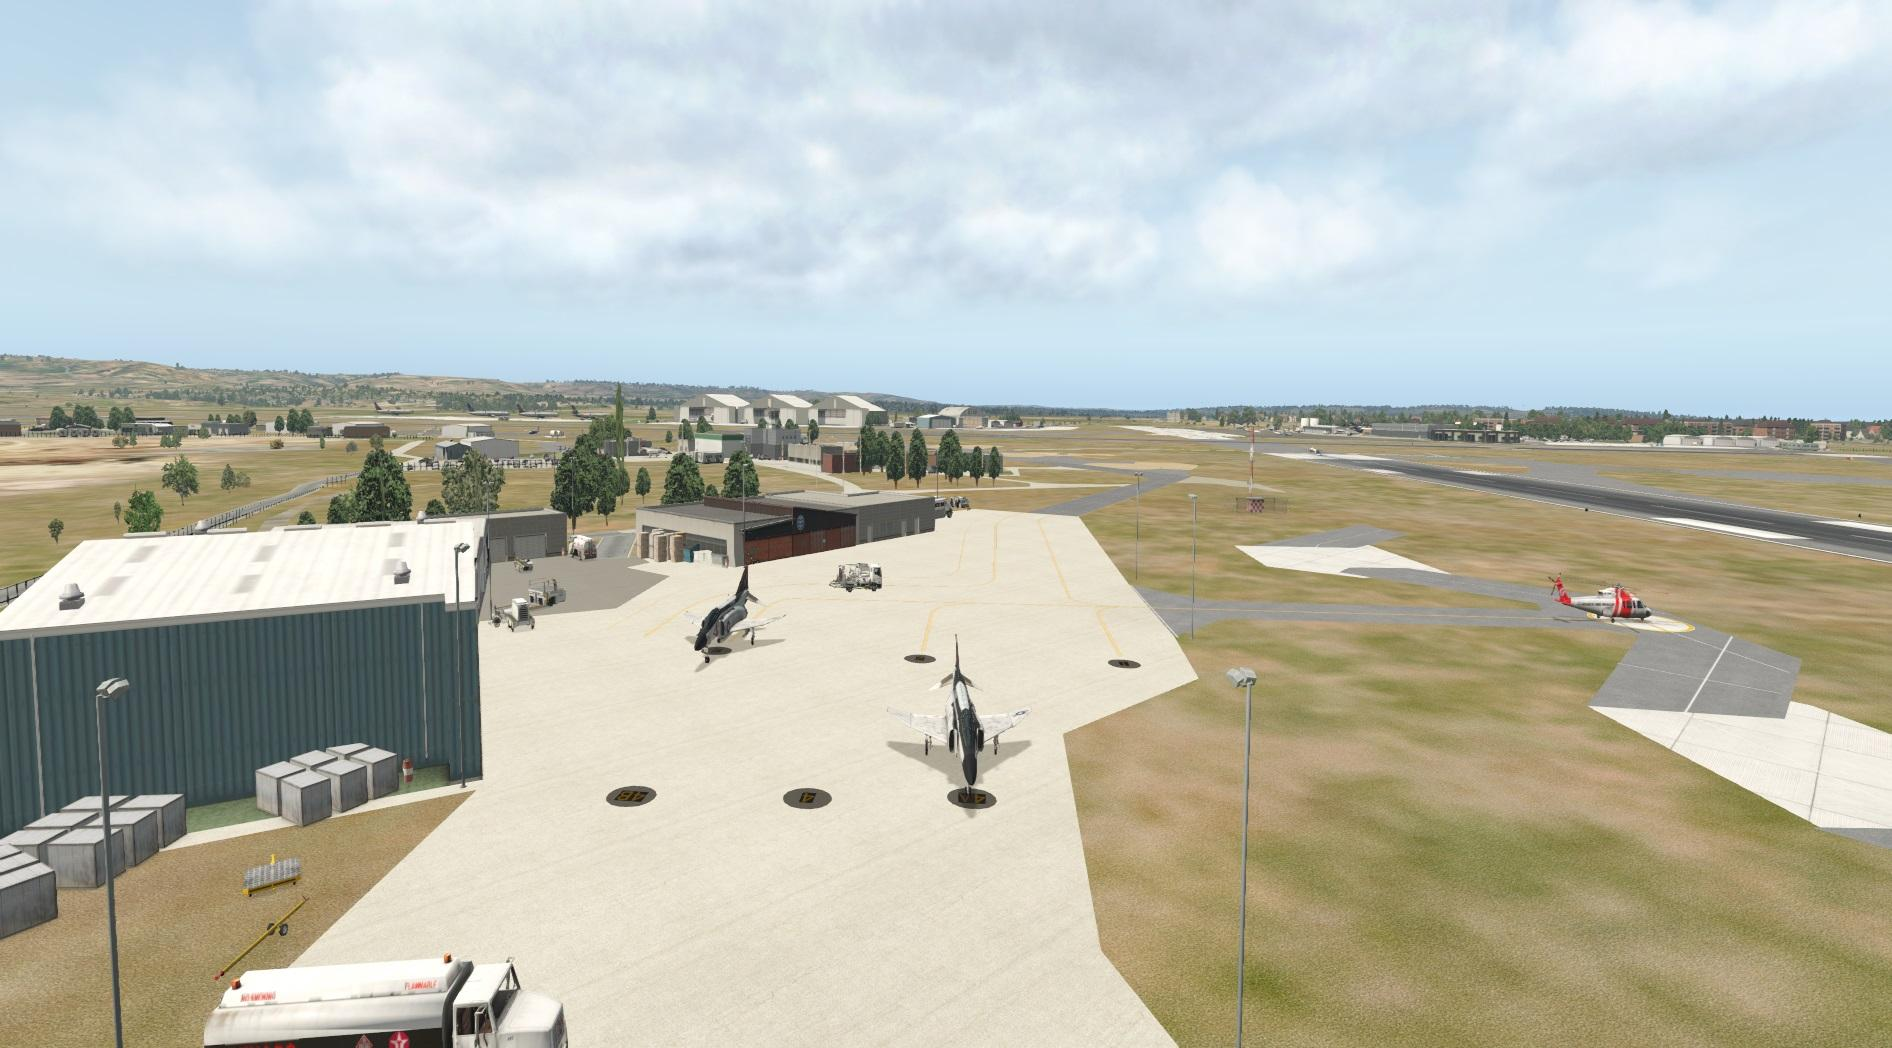 Europe_Malta_LMML - Scenery Packages (v11,v 10, v9) - X-Plane Org Forum